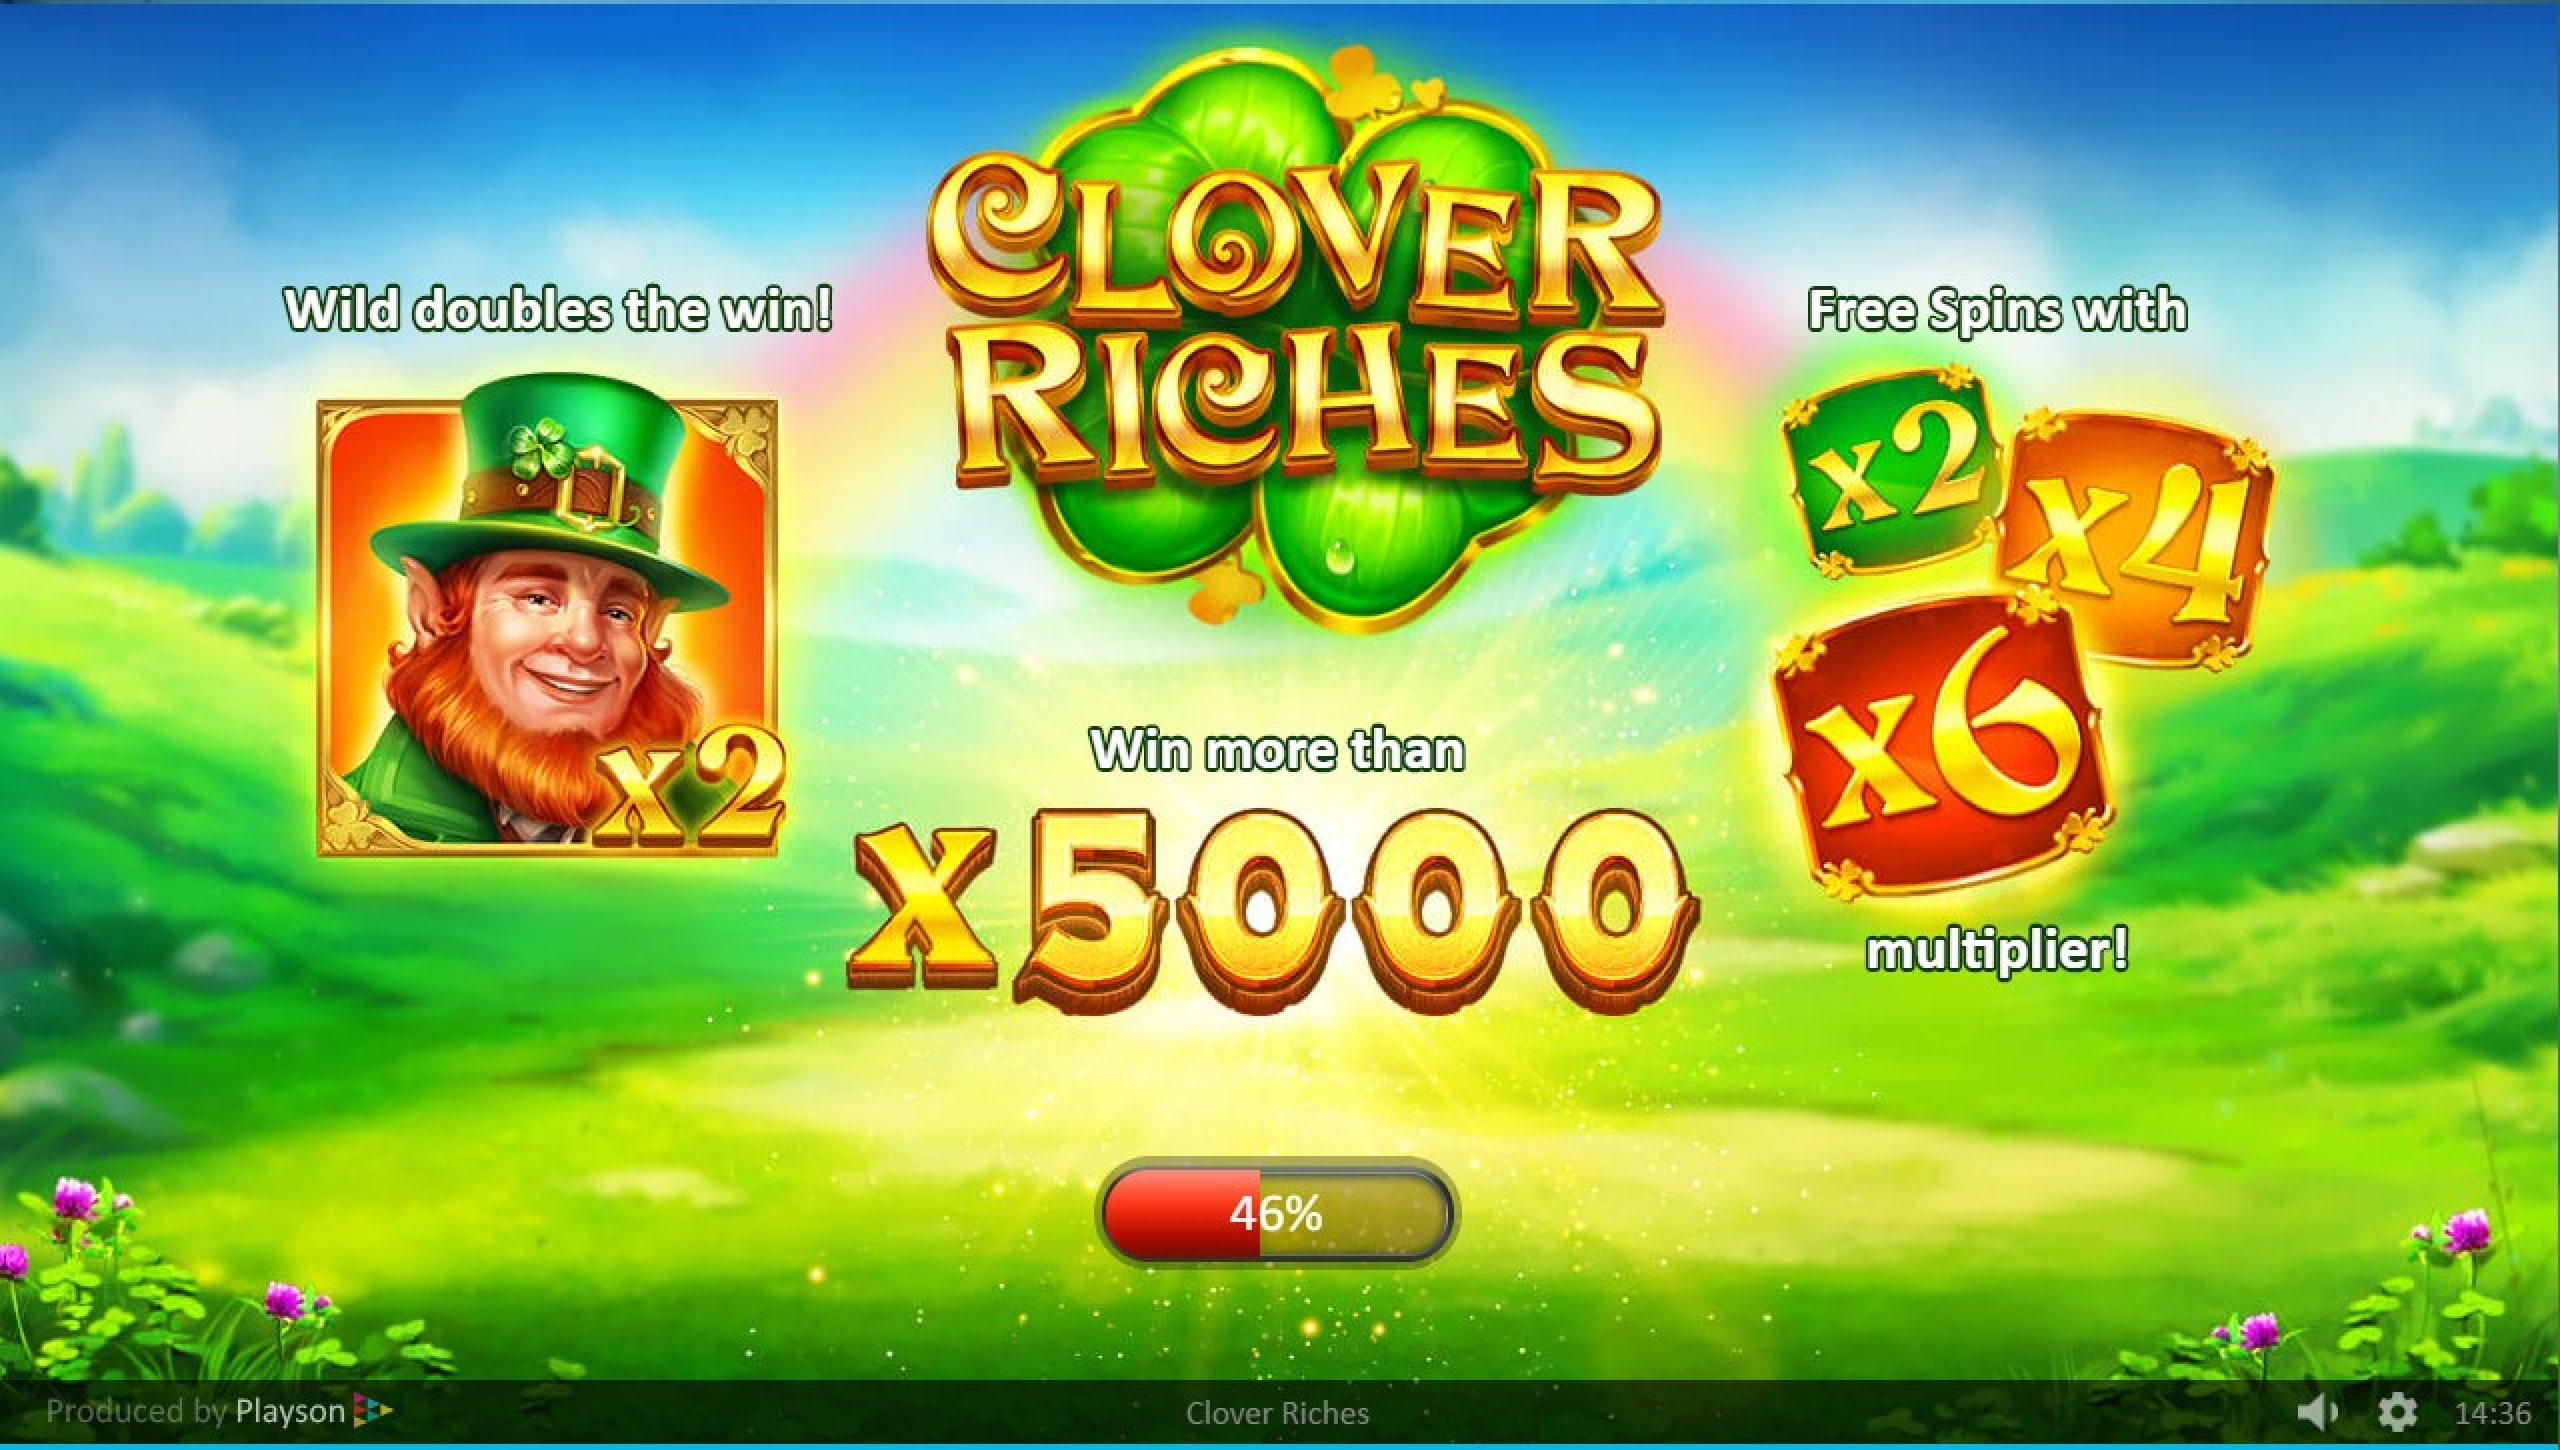 The Clover Riches Online Slot Demo Game by Playson